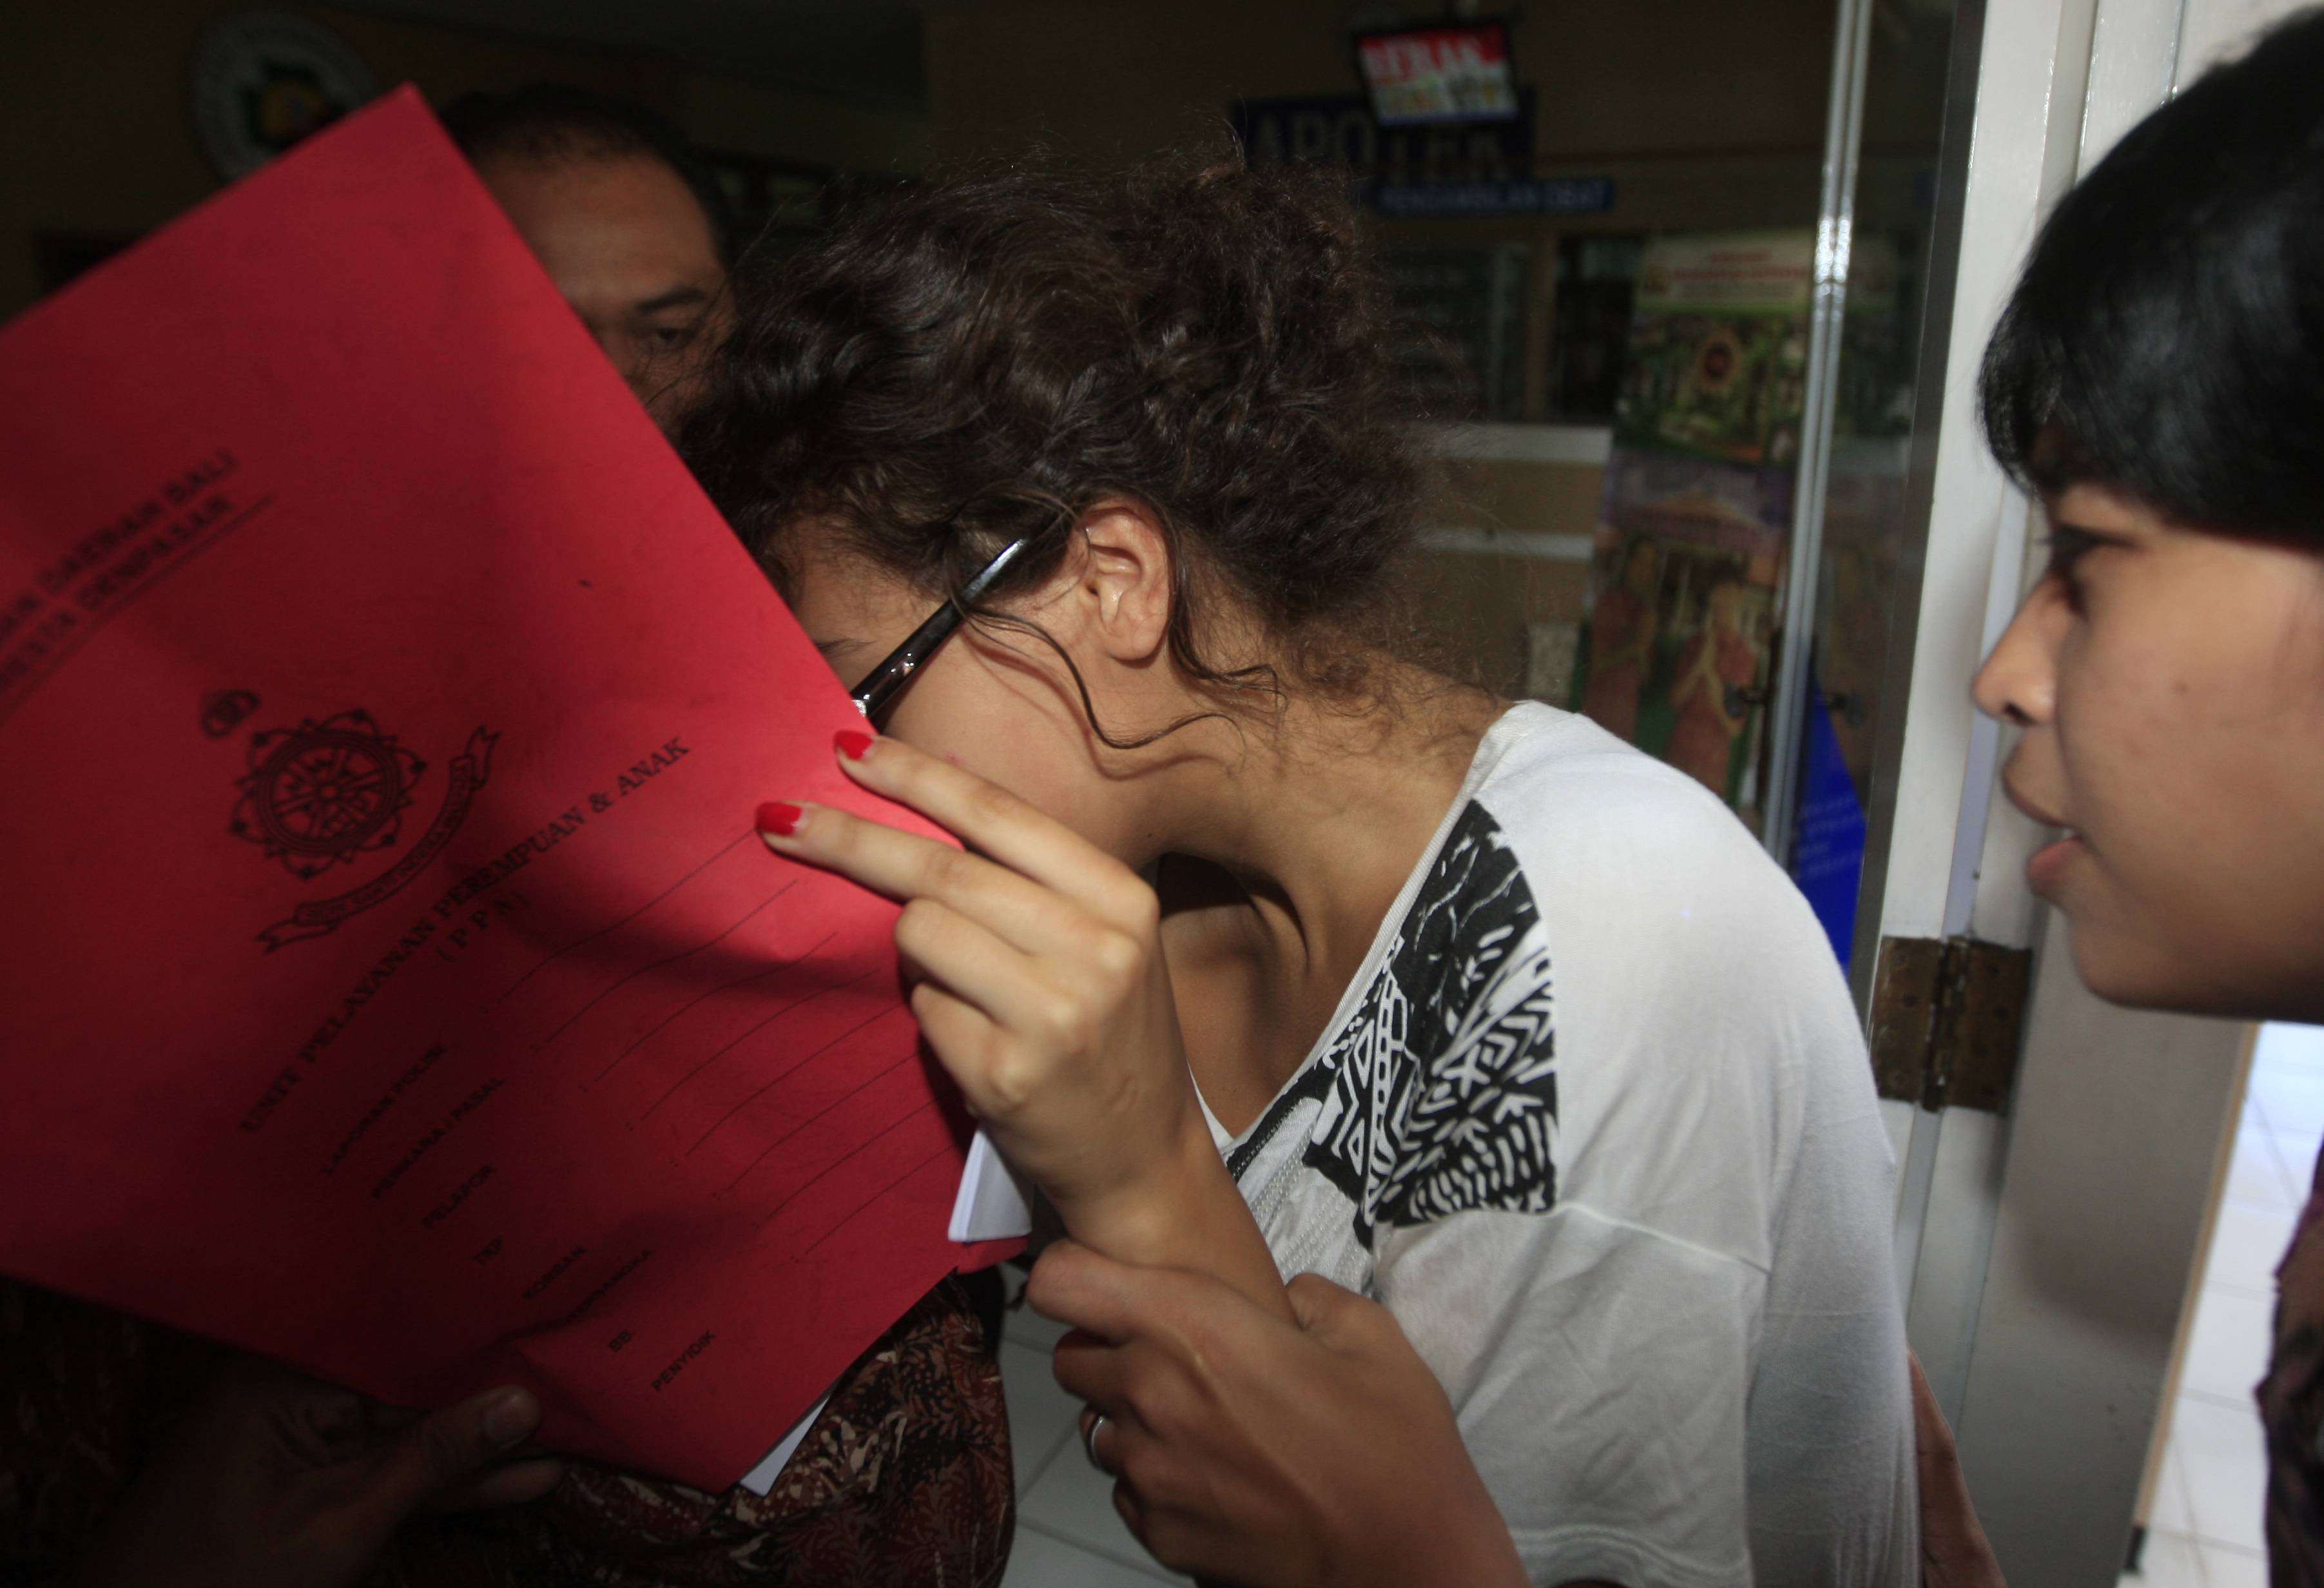 Heather Mack, covering her face, is led to a hospital Friday for a medical check by Indonesian police officers. Mack has been charged in the death of her mother, Sheila von Wiese-Mack, in Bali, Indonesia.